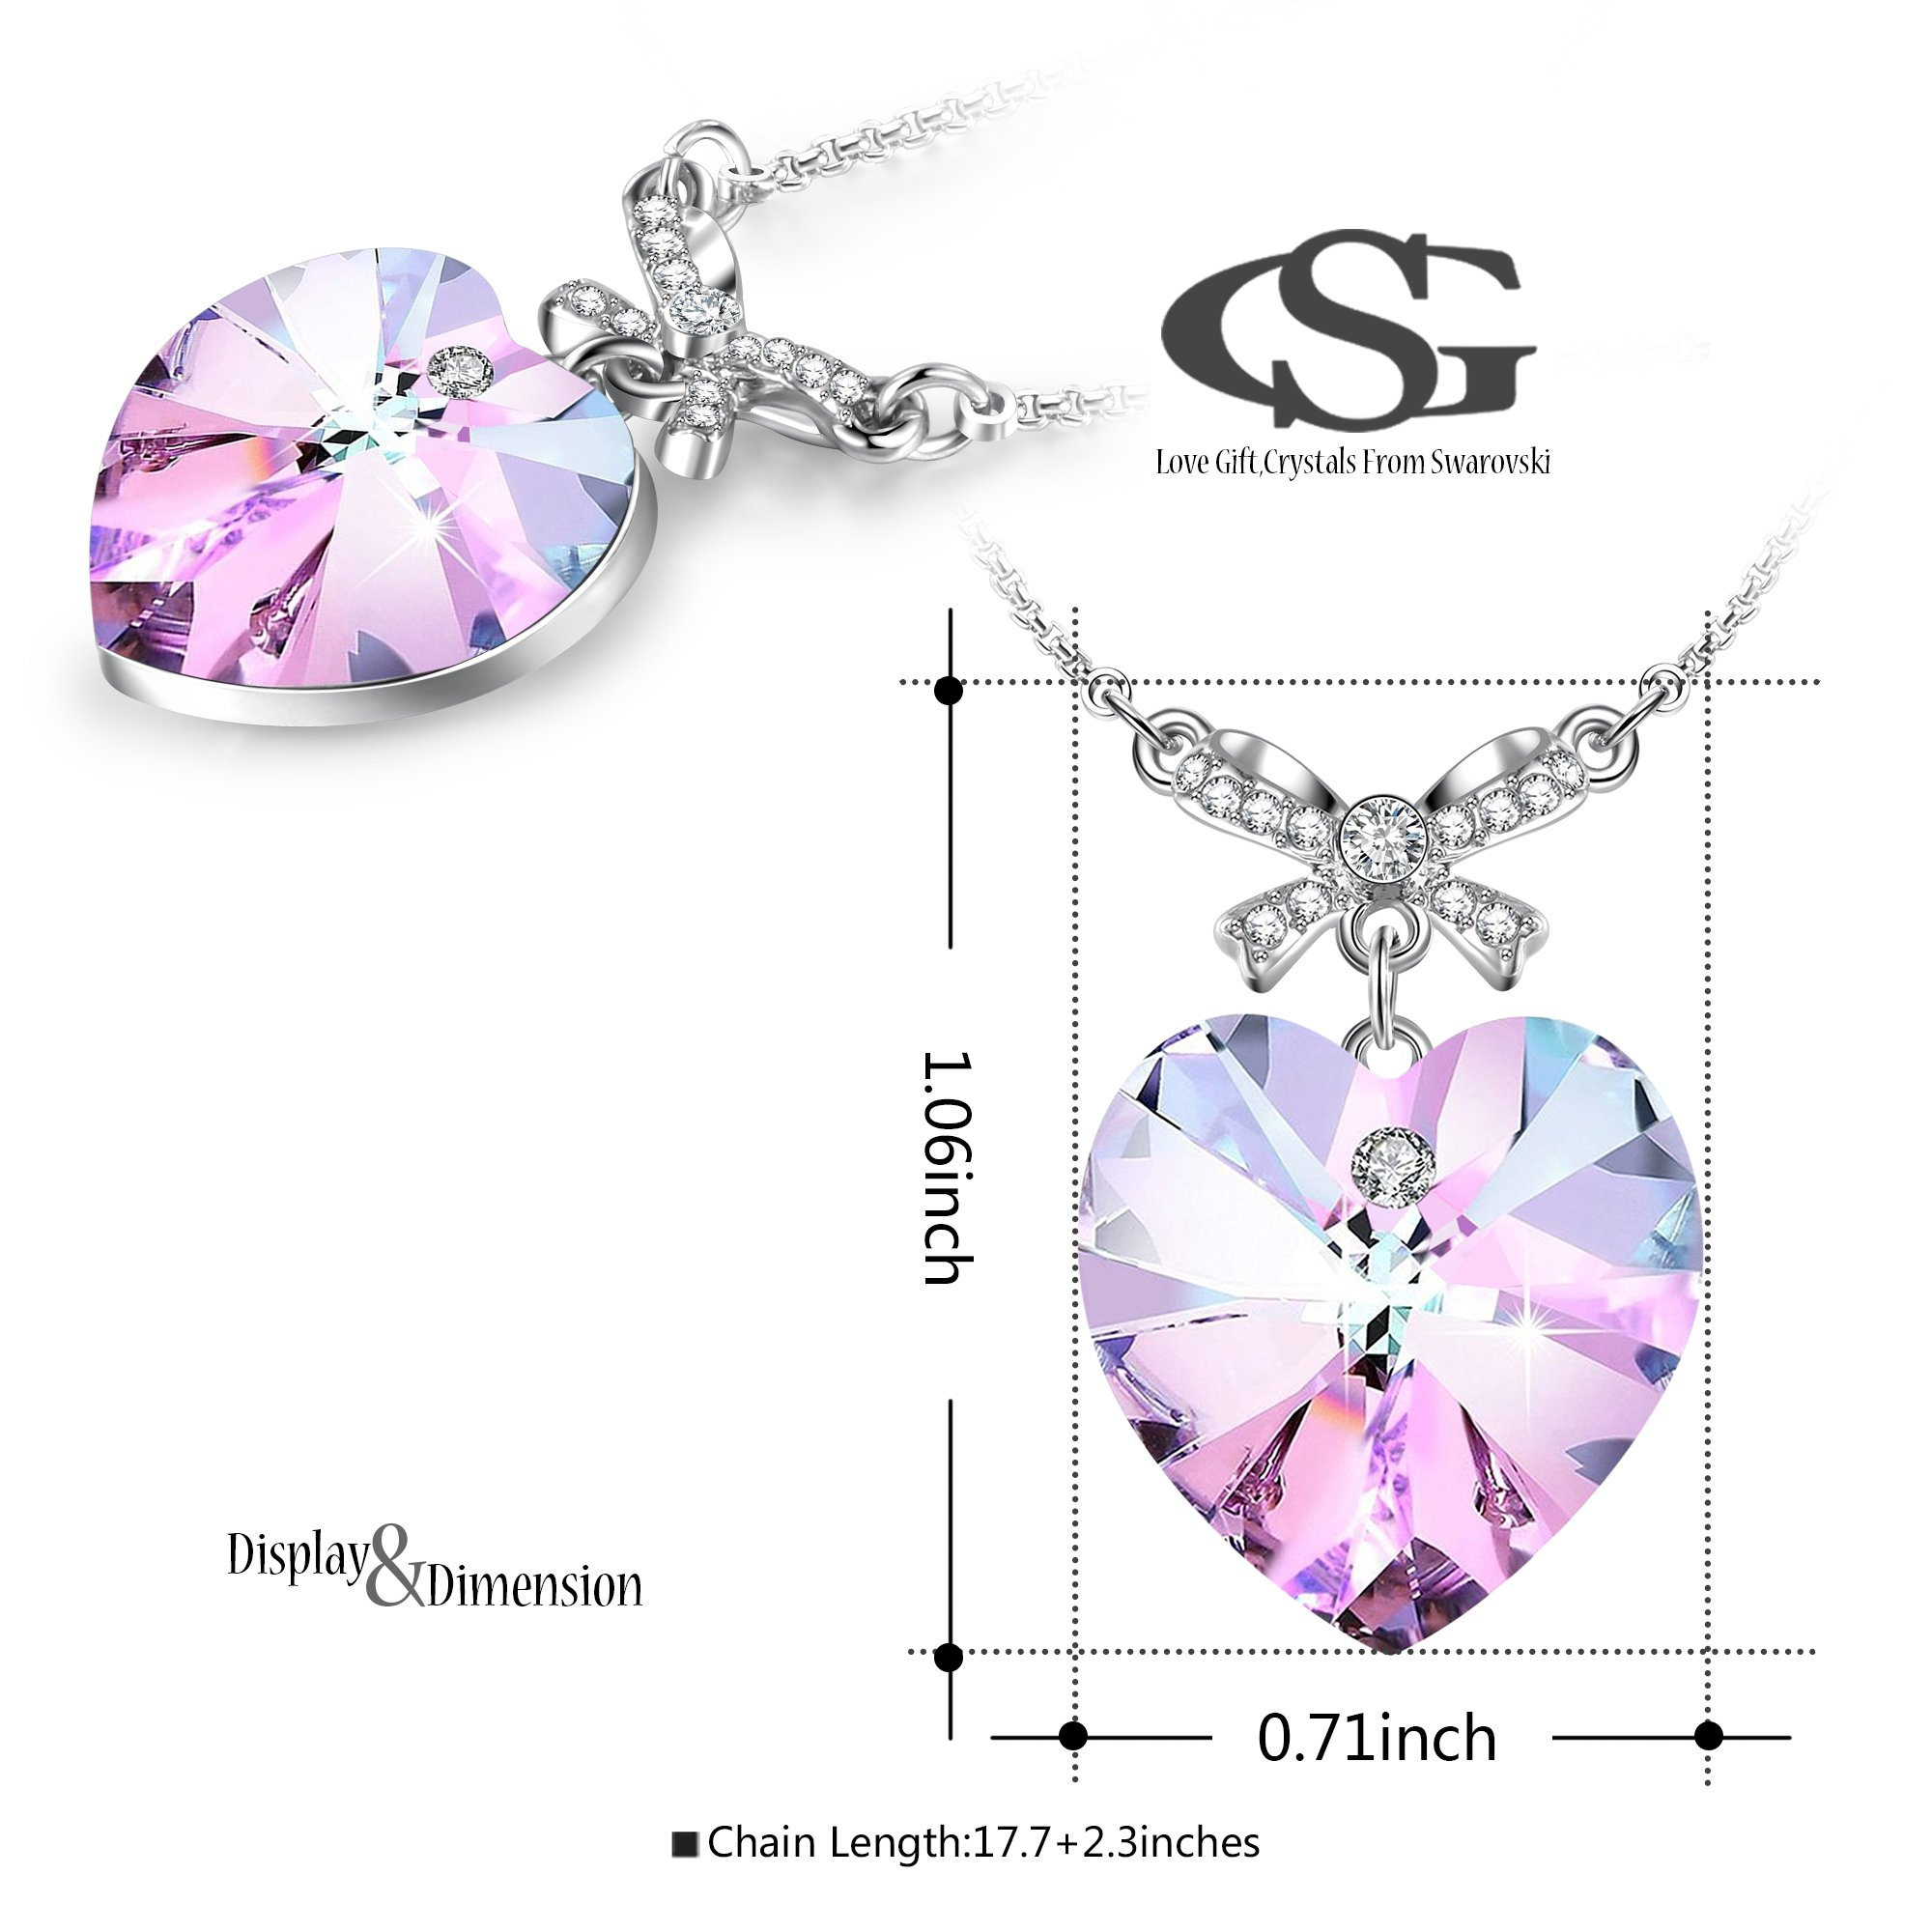 GEORGE · SMITH Gifts for Women Beautiful Soul Bowtie Love Heart Pendant Necklace Birthday Jewelry for Wife Mother Sister, Amethyst Purple Crystals from Swarovski